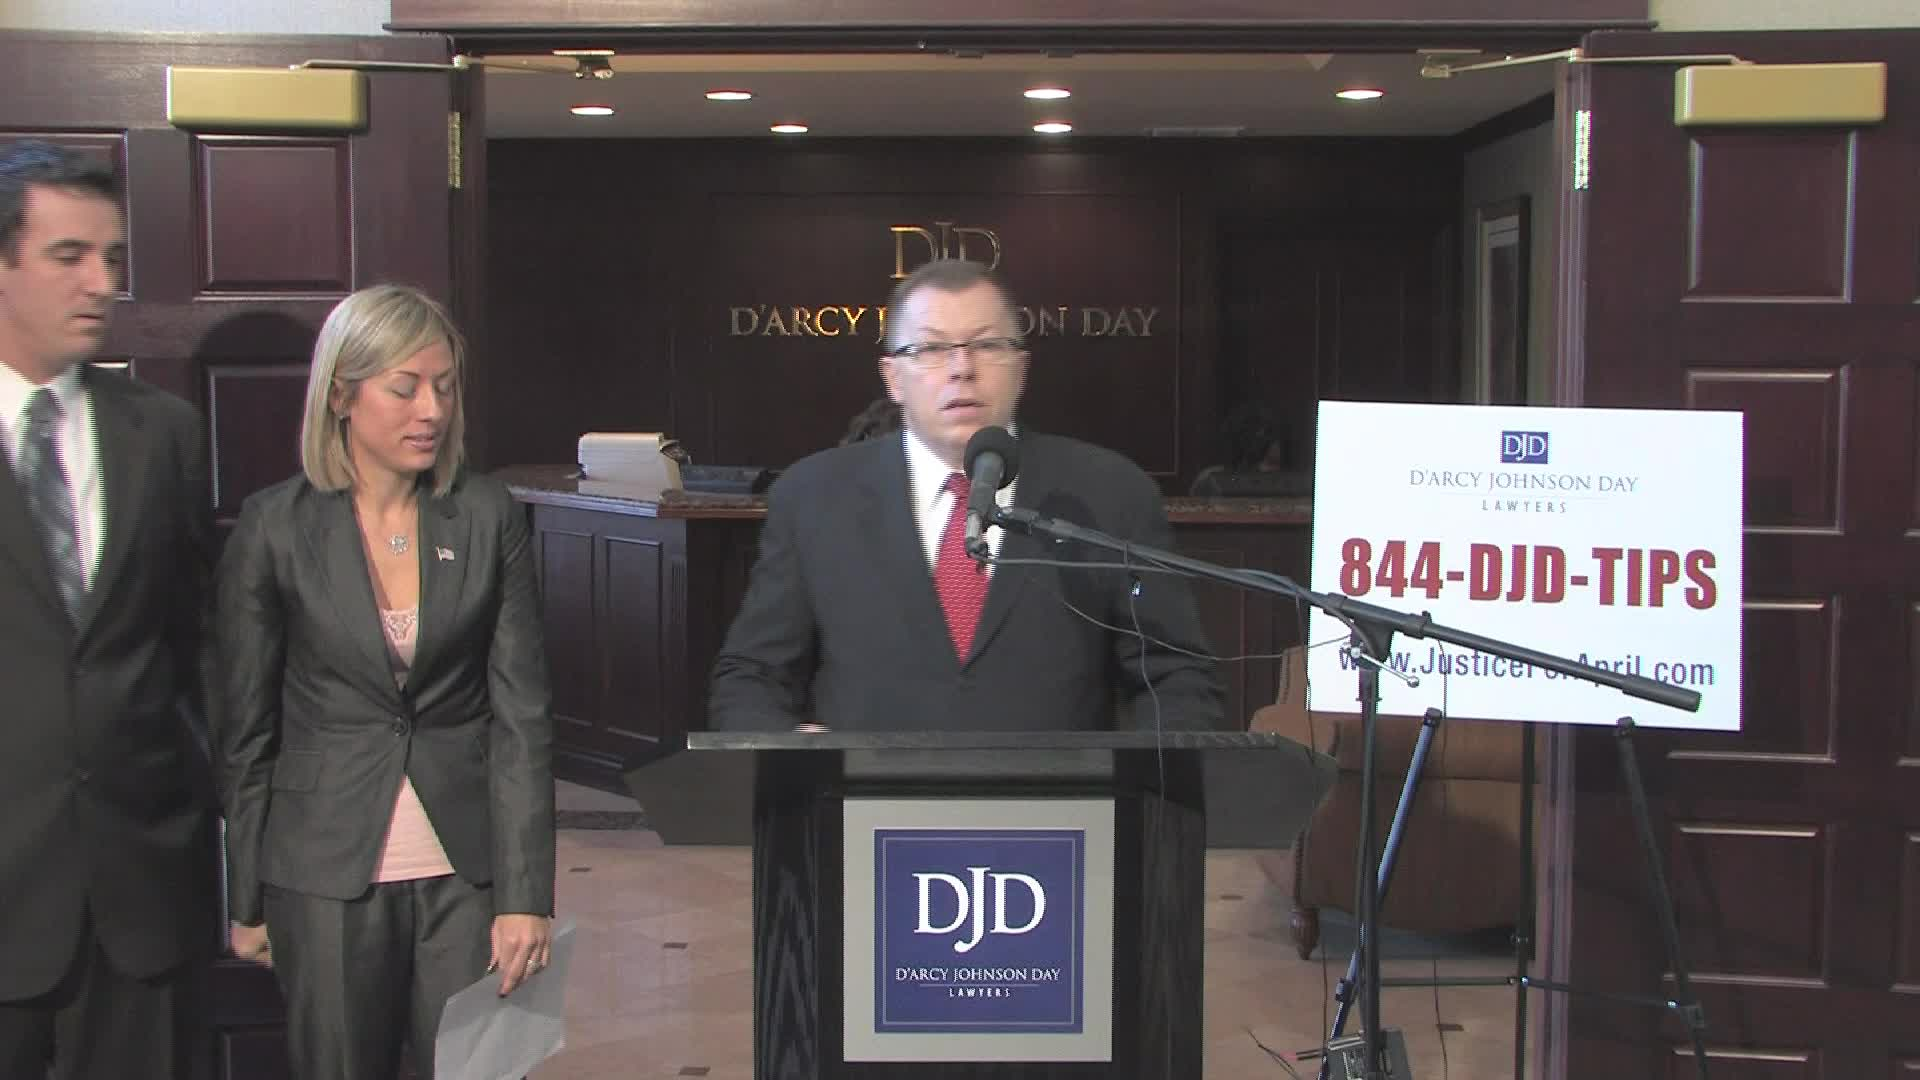 Kimberly Pack, daughter of slain radio personality April Kauffman, issues a statement concerning a lawsuit filed in Federal Court this morning regarding her mother's murder. First speaker is Patrick D'Arcy, partner at D'Arcy Johnson Day, Kimberly's attorney. Second speaker is Kimberly Pack.